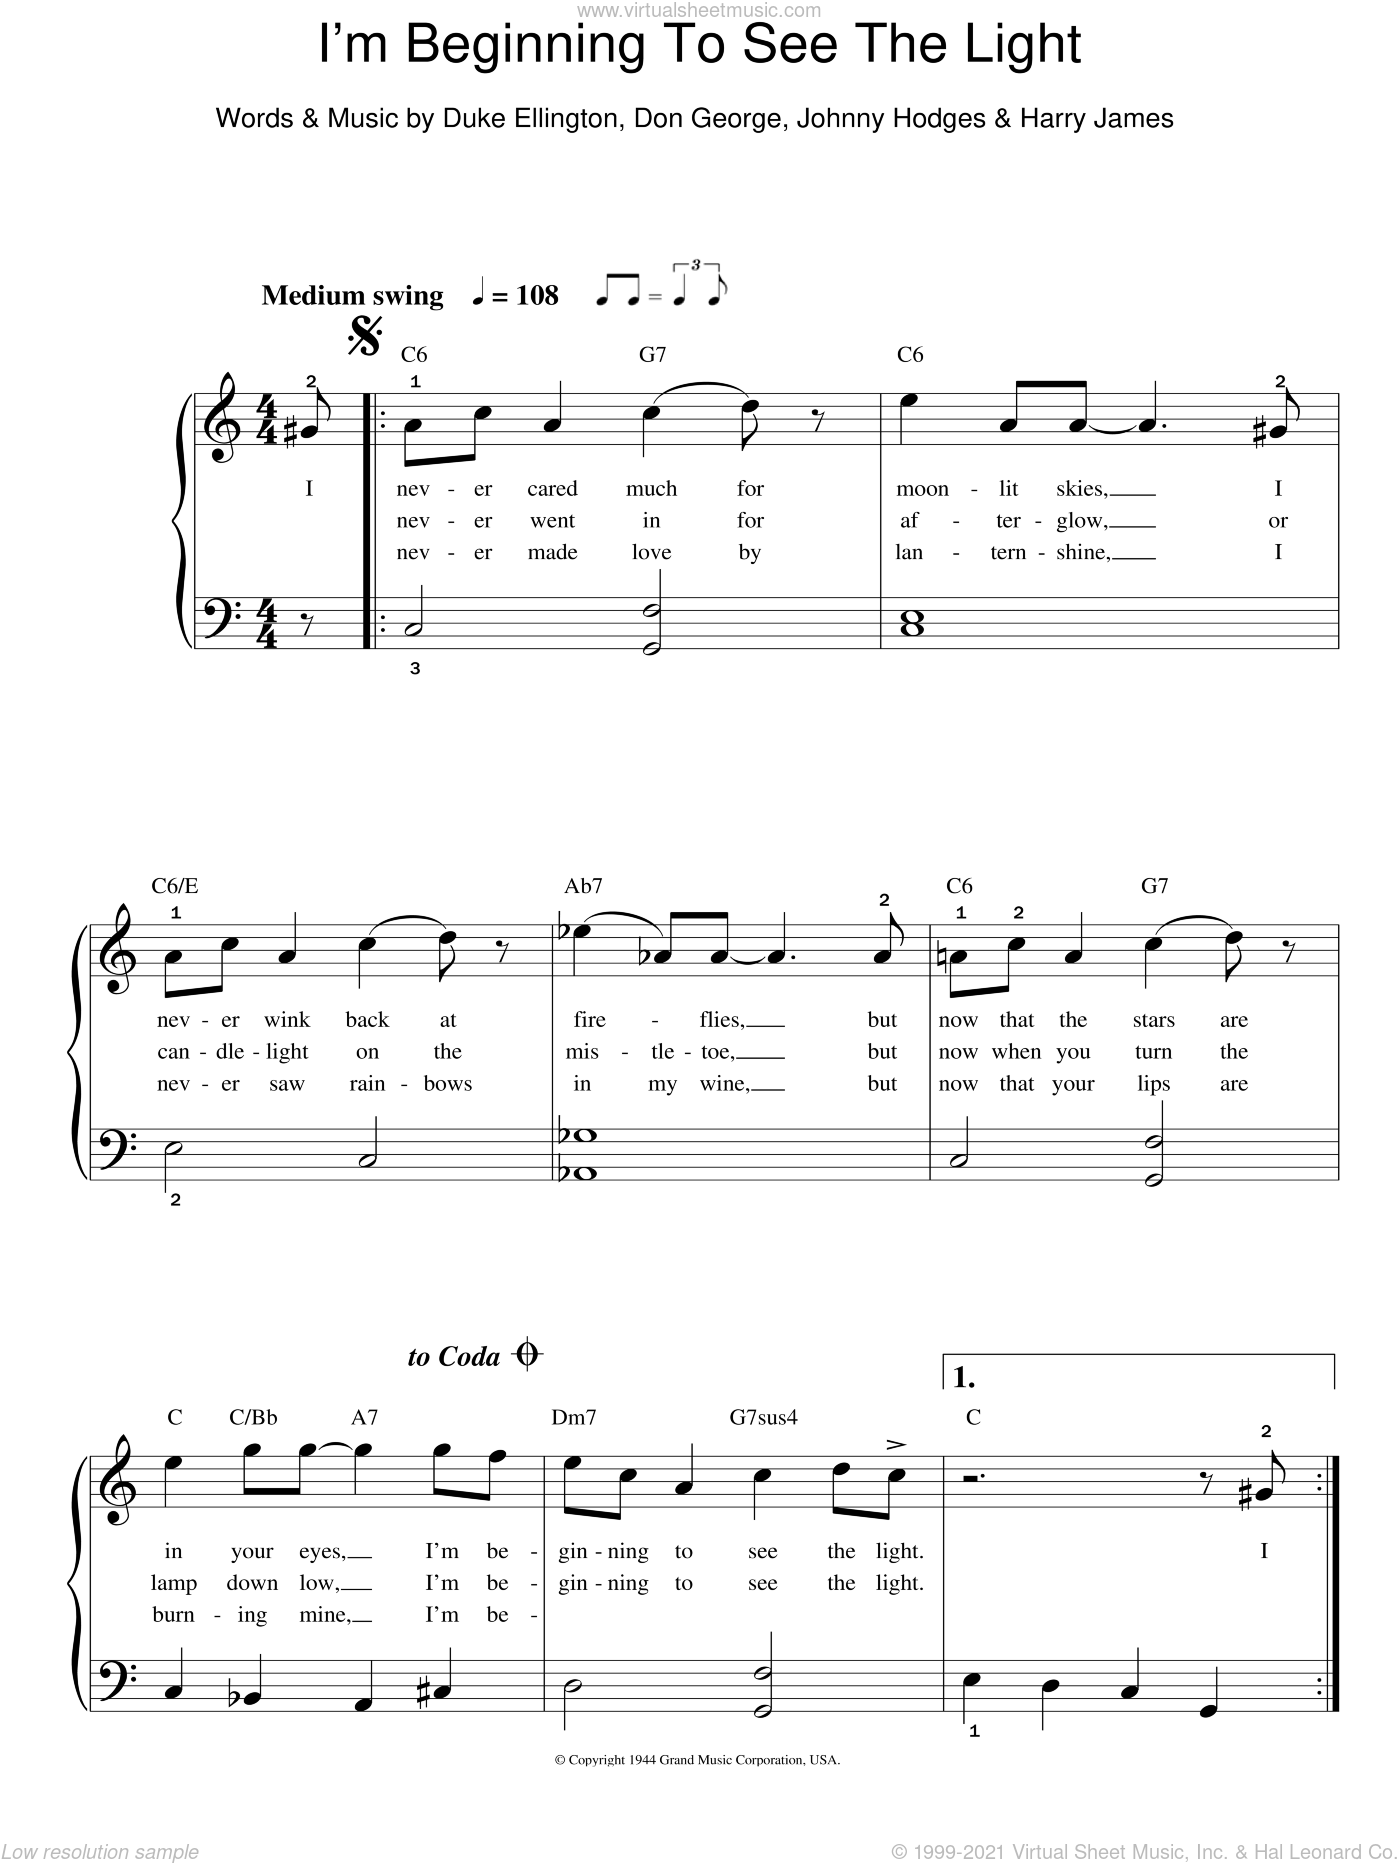 I'm Beginning To See The Light sheet music for piano solo by Frank Sinatra, Clare Teal, Don George, Duke Ellington, Harry James and Johnny Hodges, easy skill level